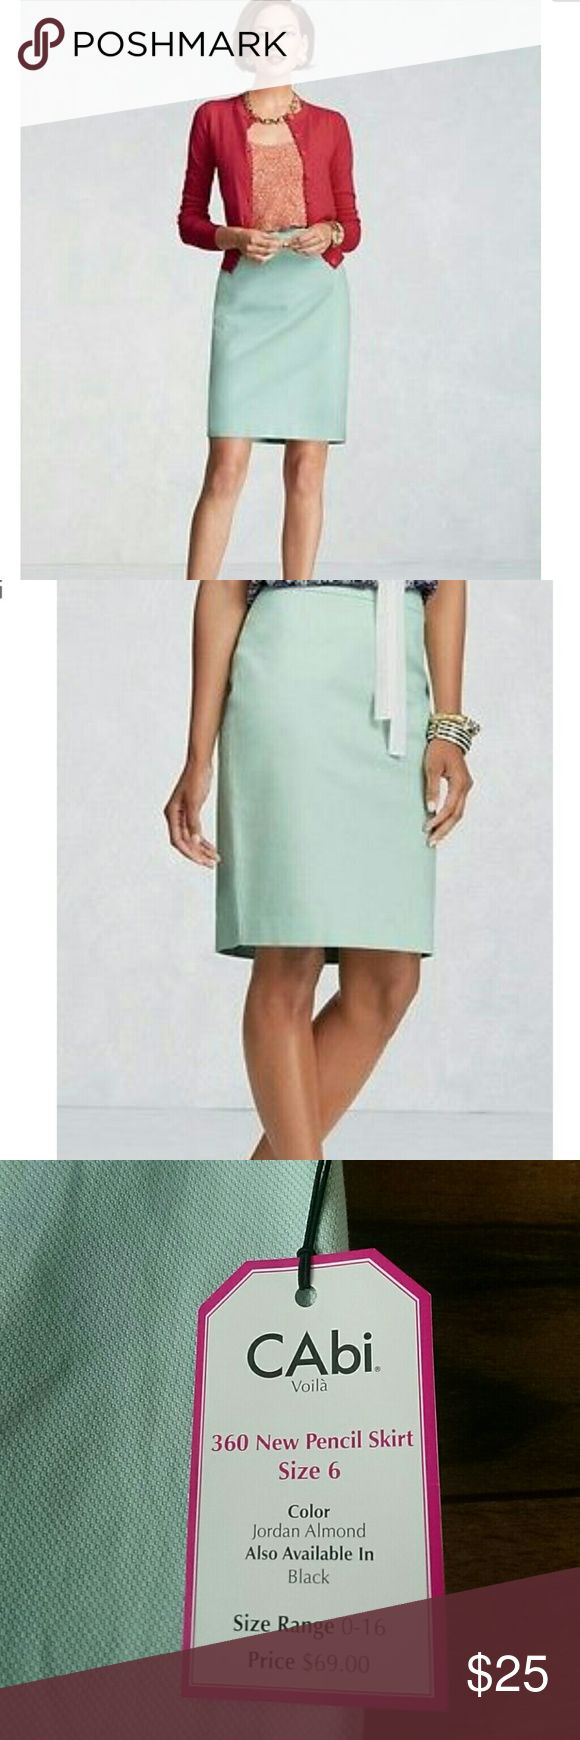 """NWT Cabi Pencil Skirt Brand new wirh tags pencil skirt in """"jordan almond"""" color! 98% cotton 2% spandex CAbi Skirts"""